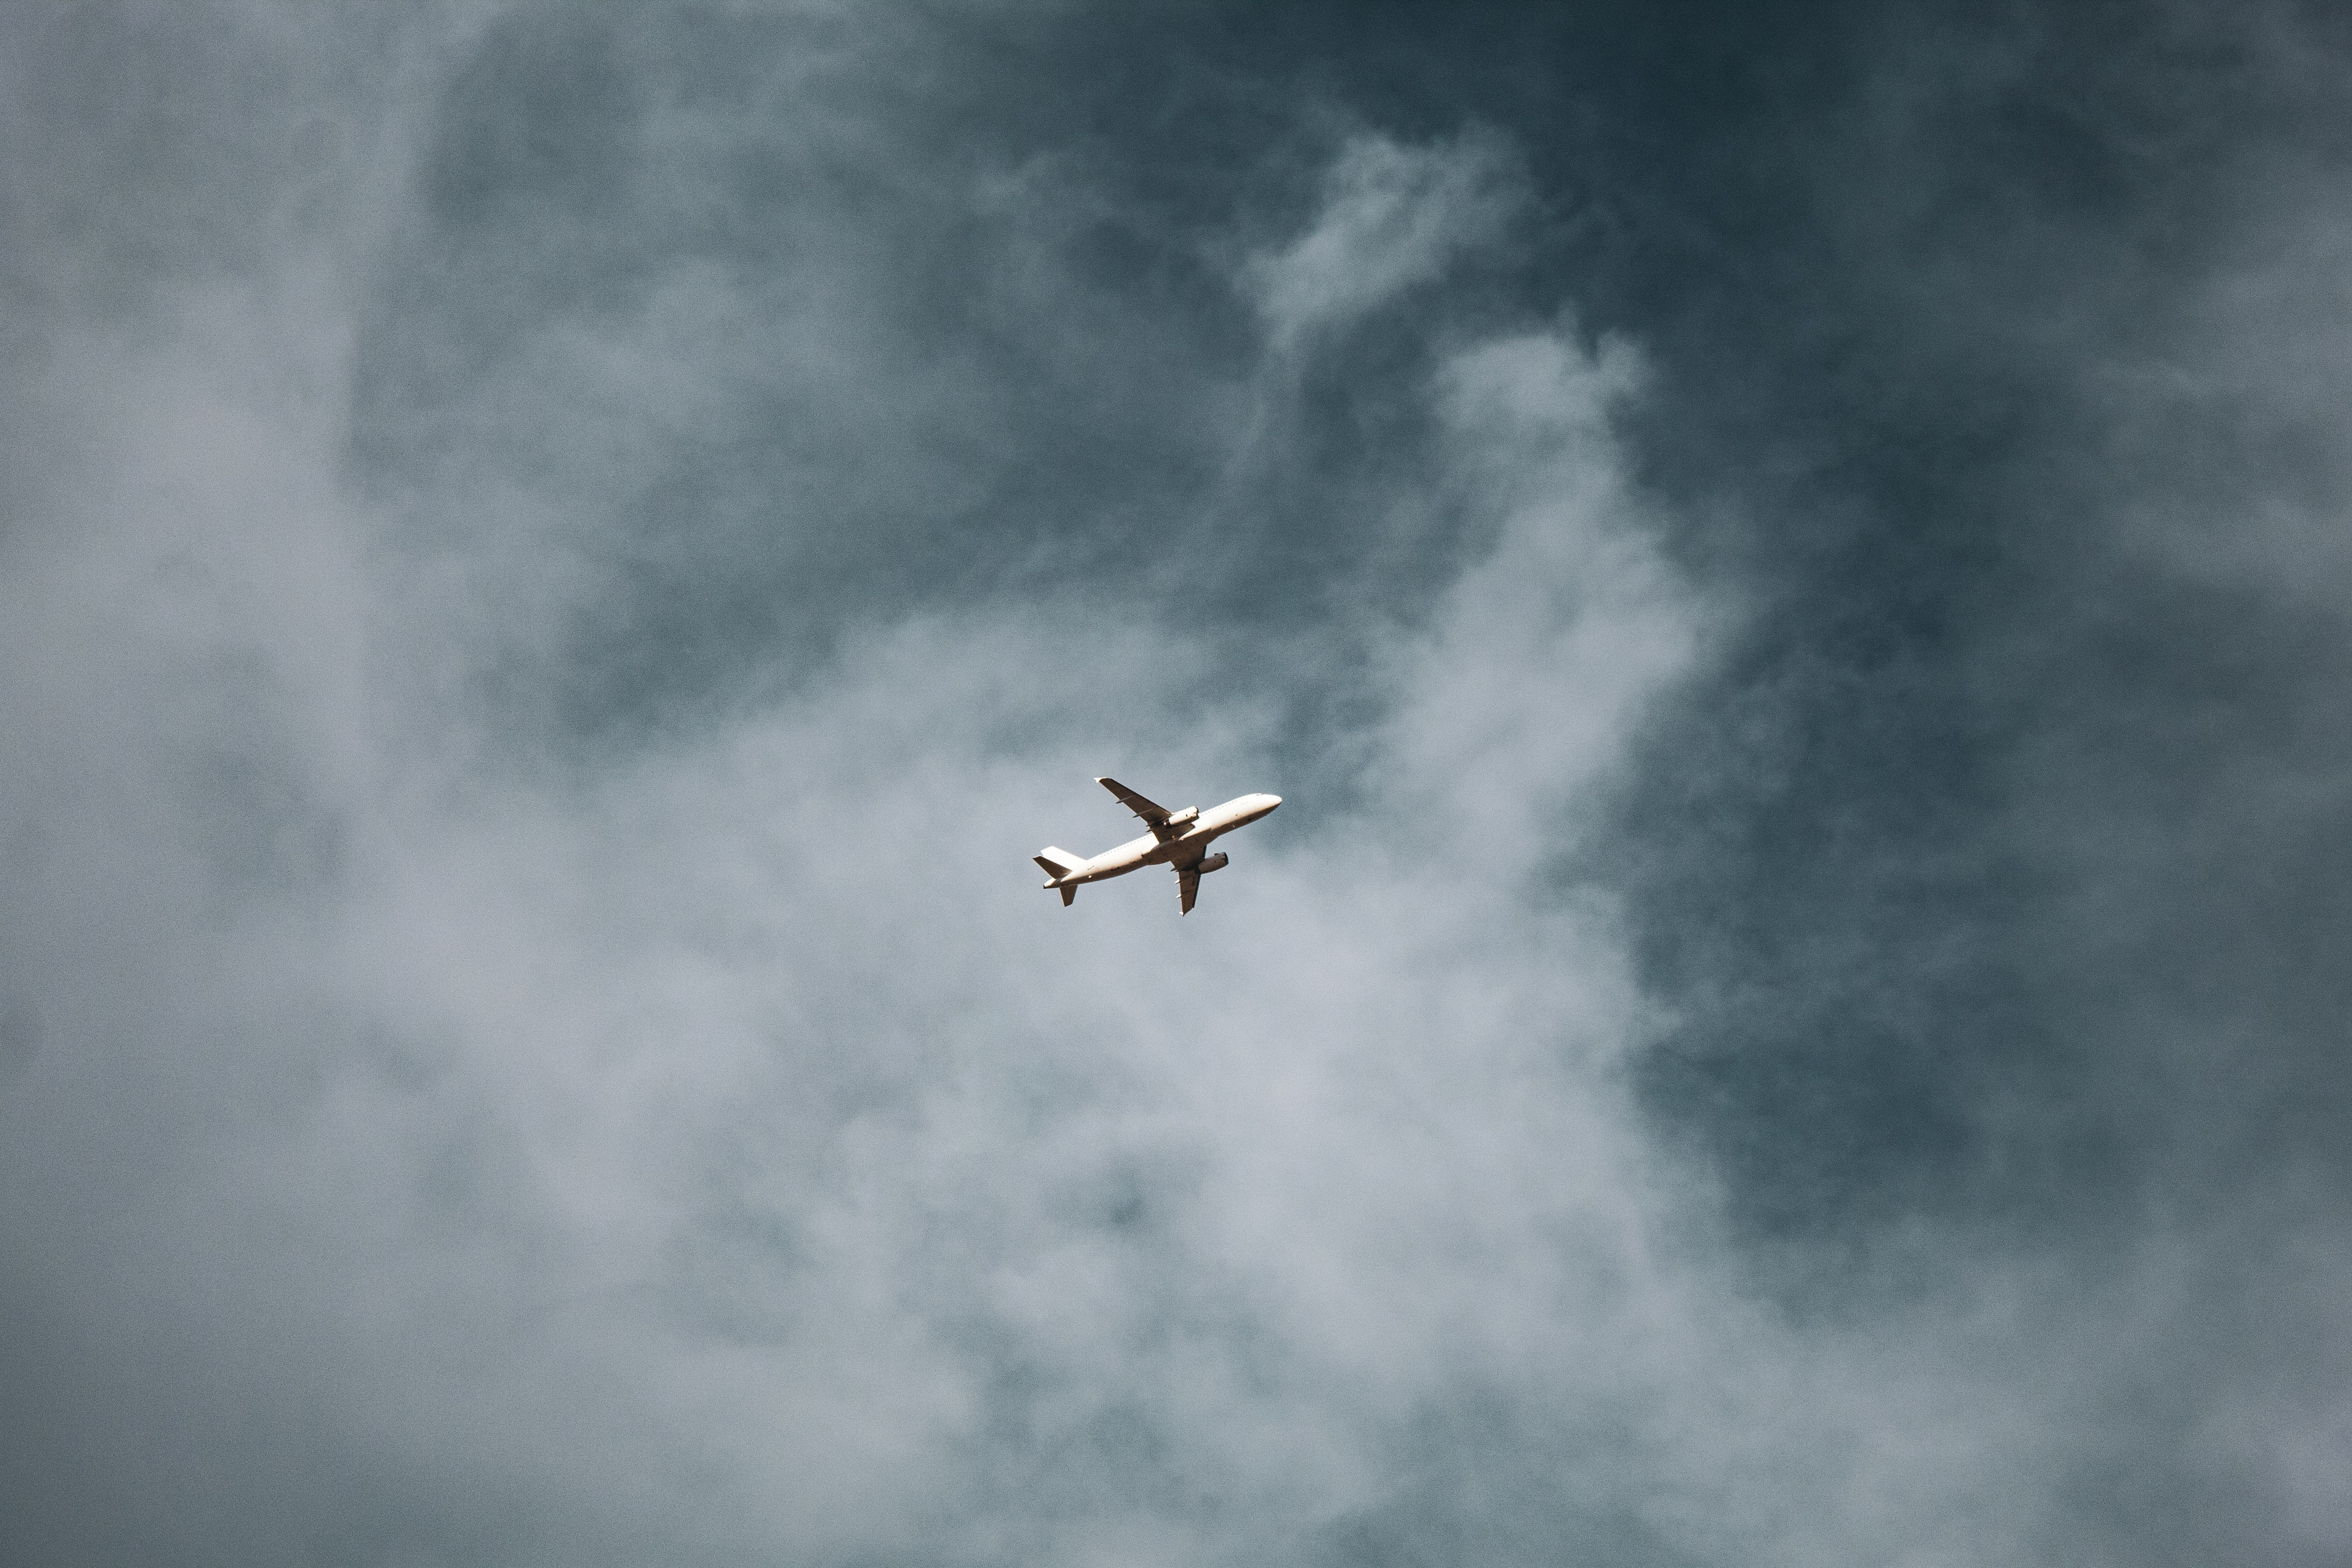 A white plane on air under a cloudy sky